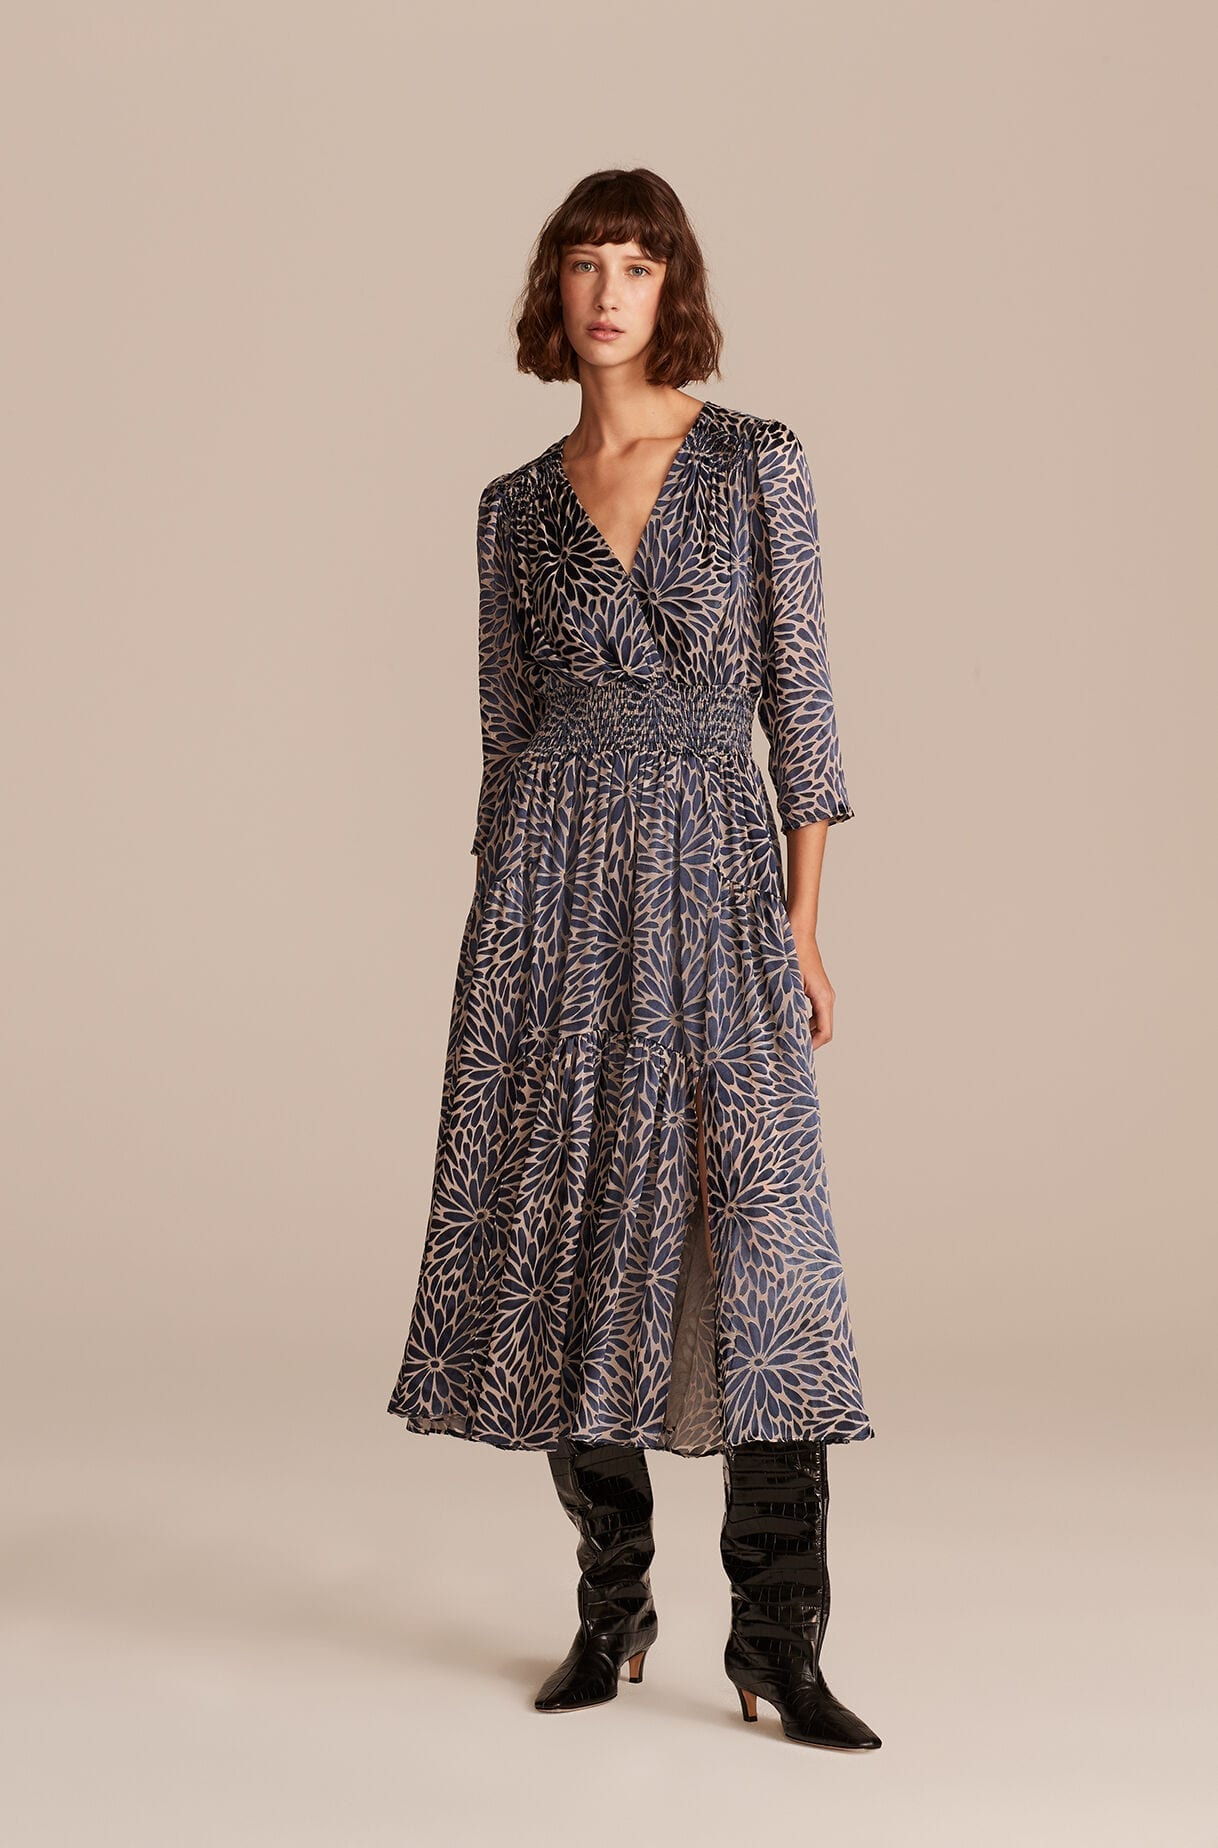 REBECCA TAYLOR Autumn Bloom Long Dress